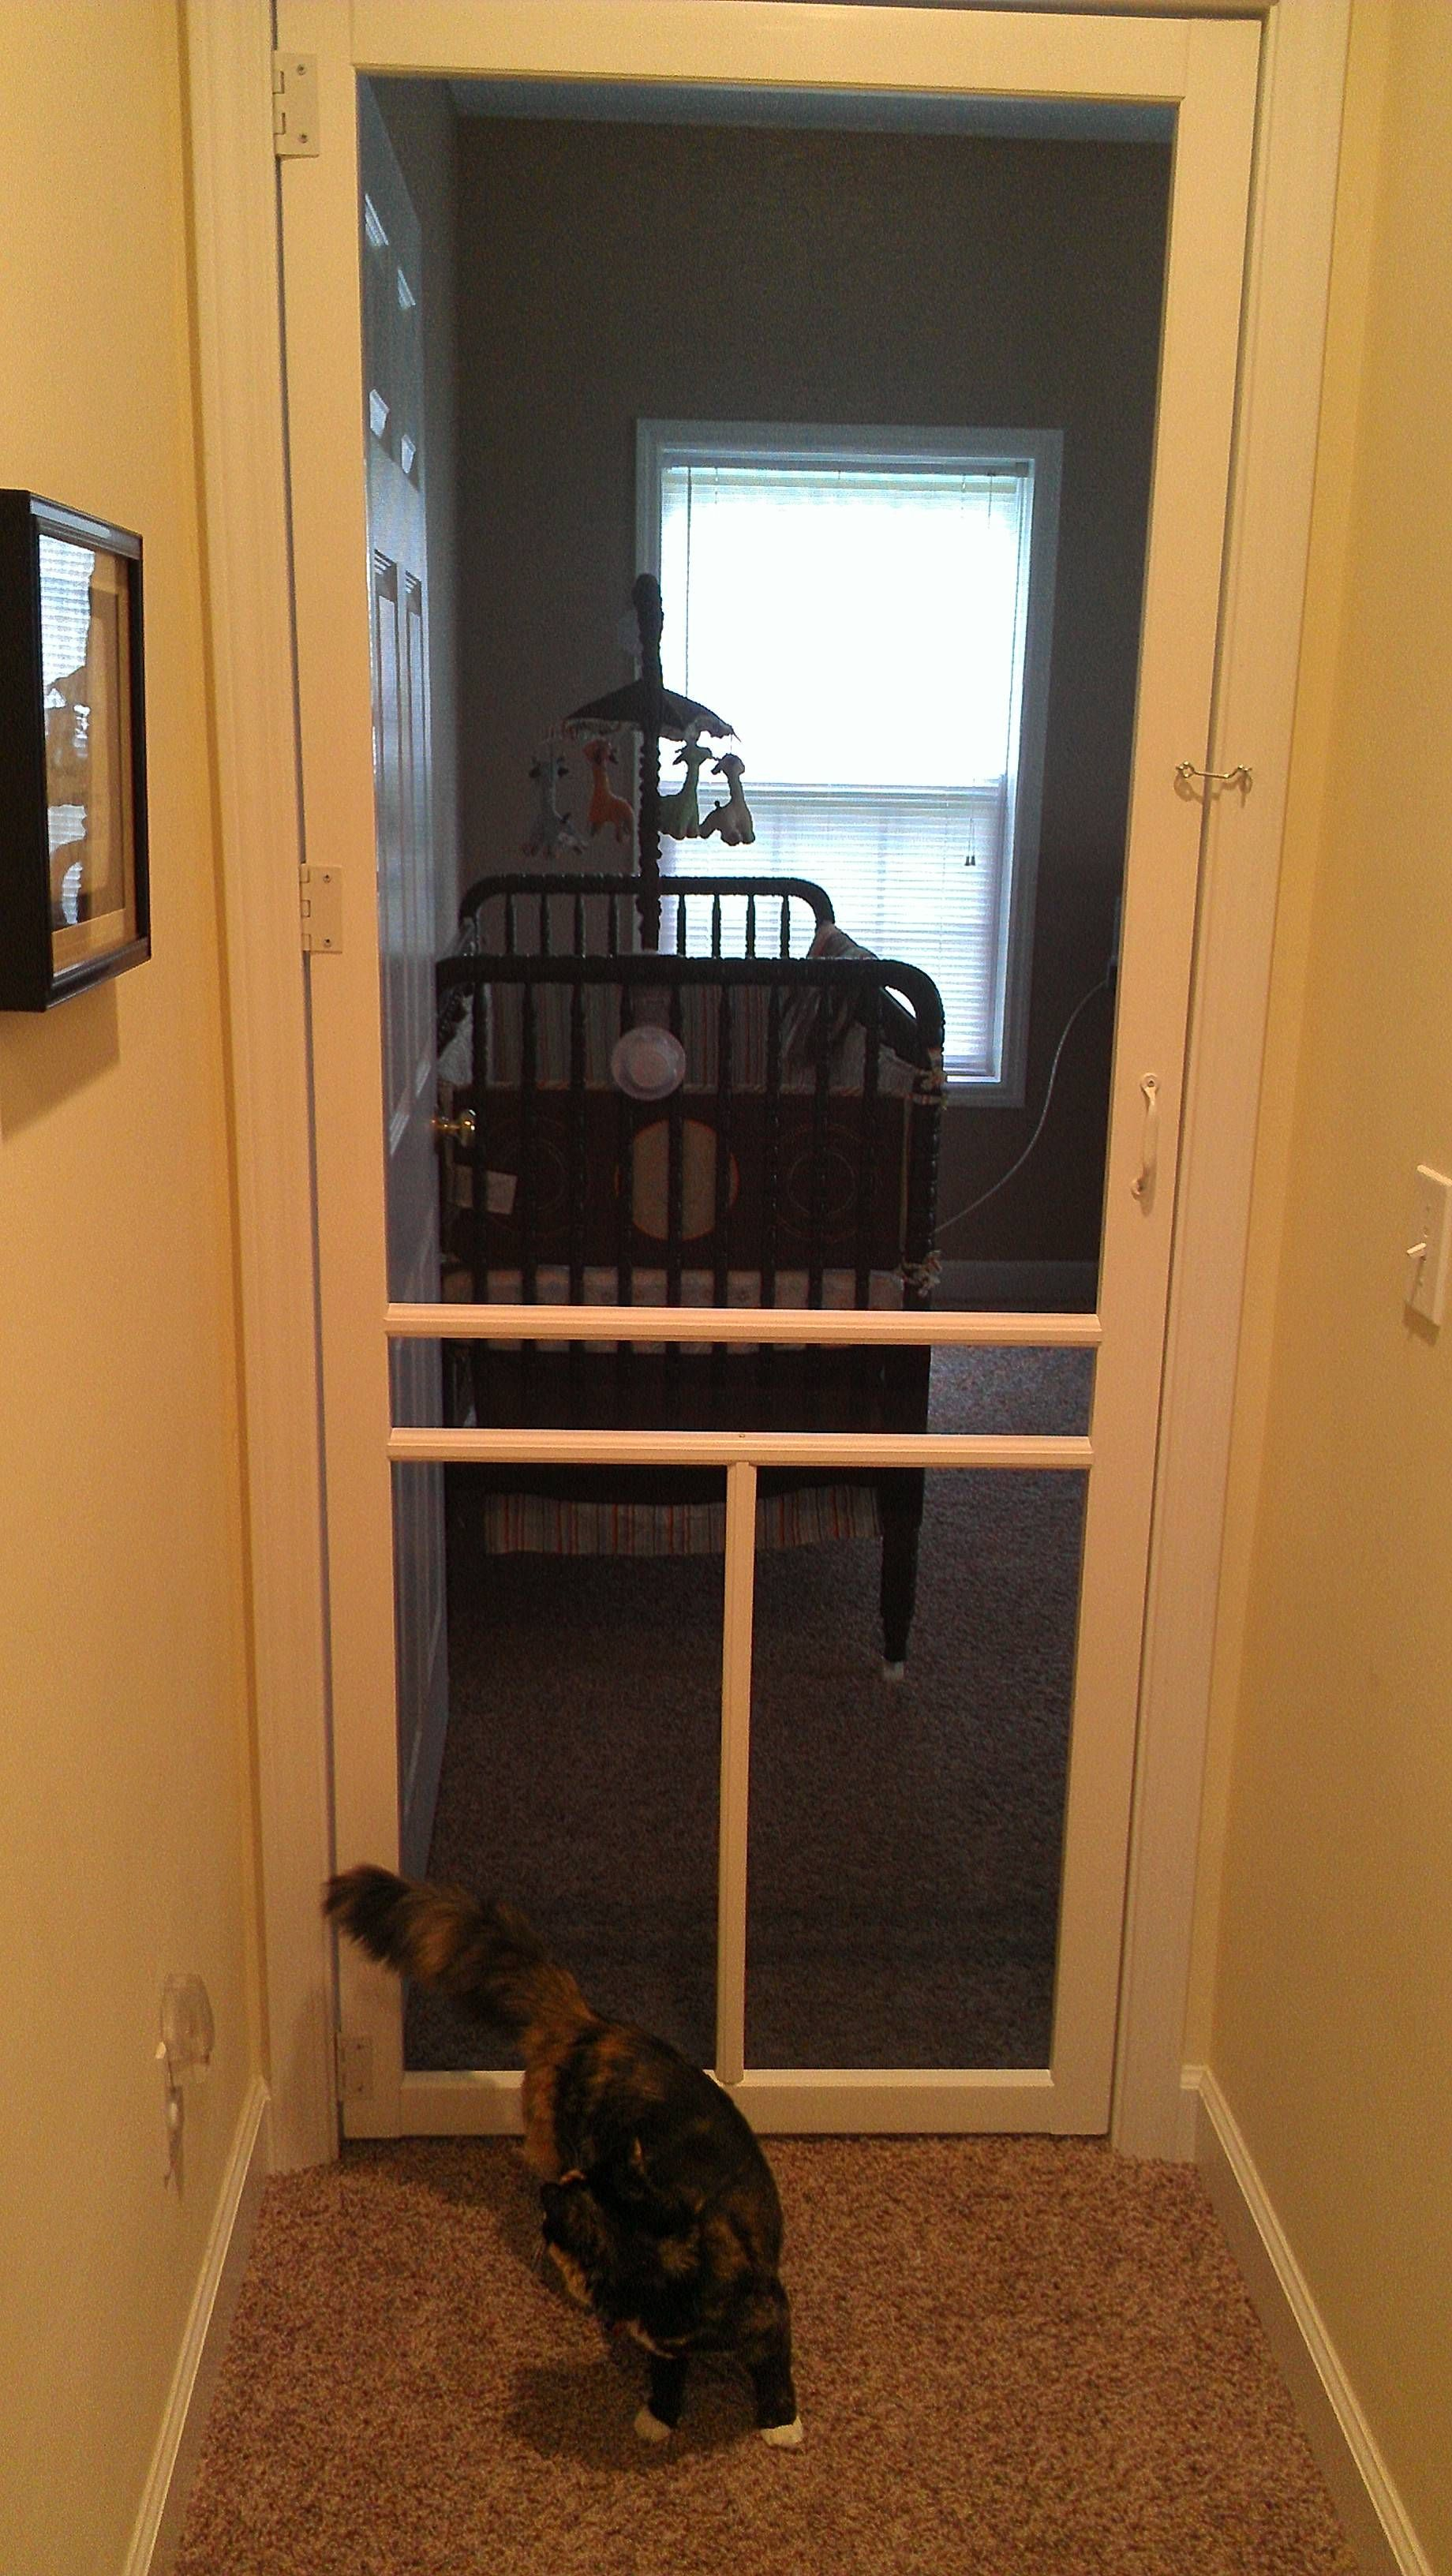 Screen Door On Babies Room So Cat Cannot Enter But We Can